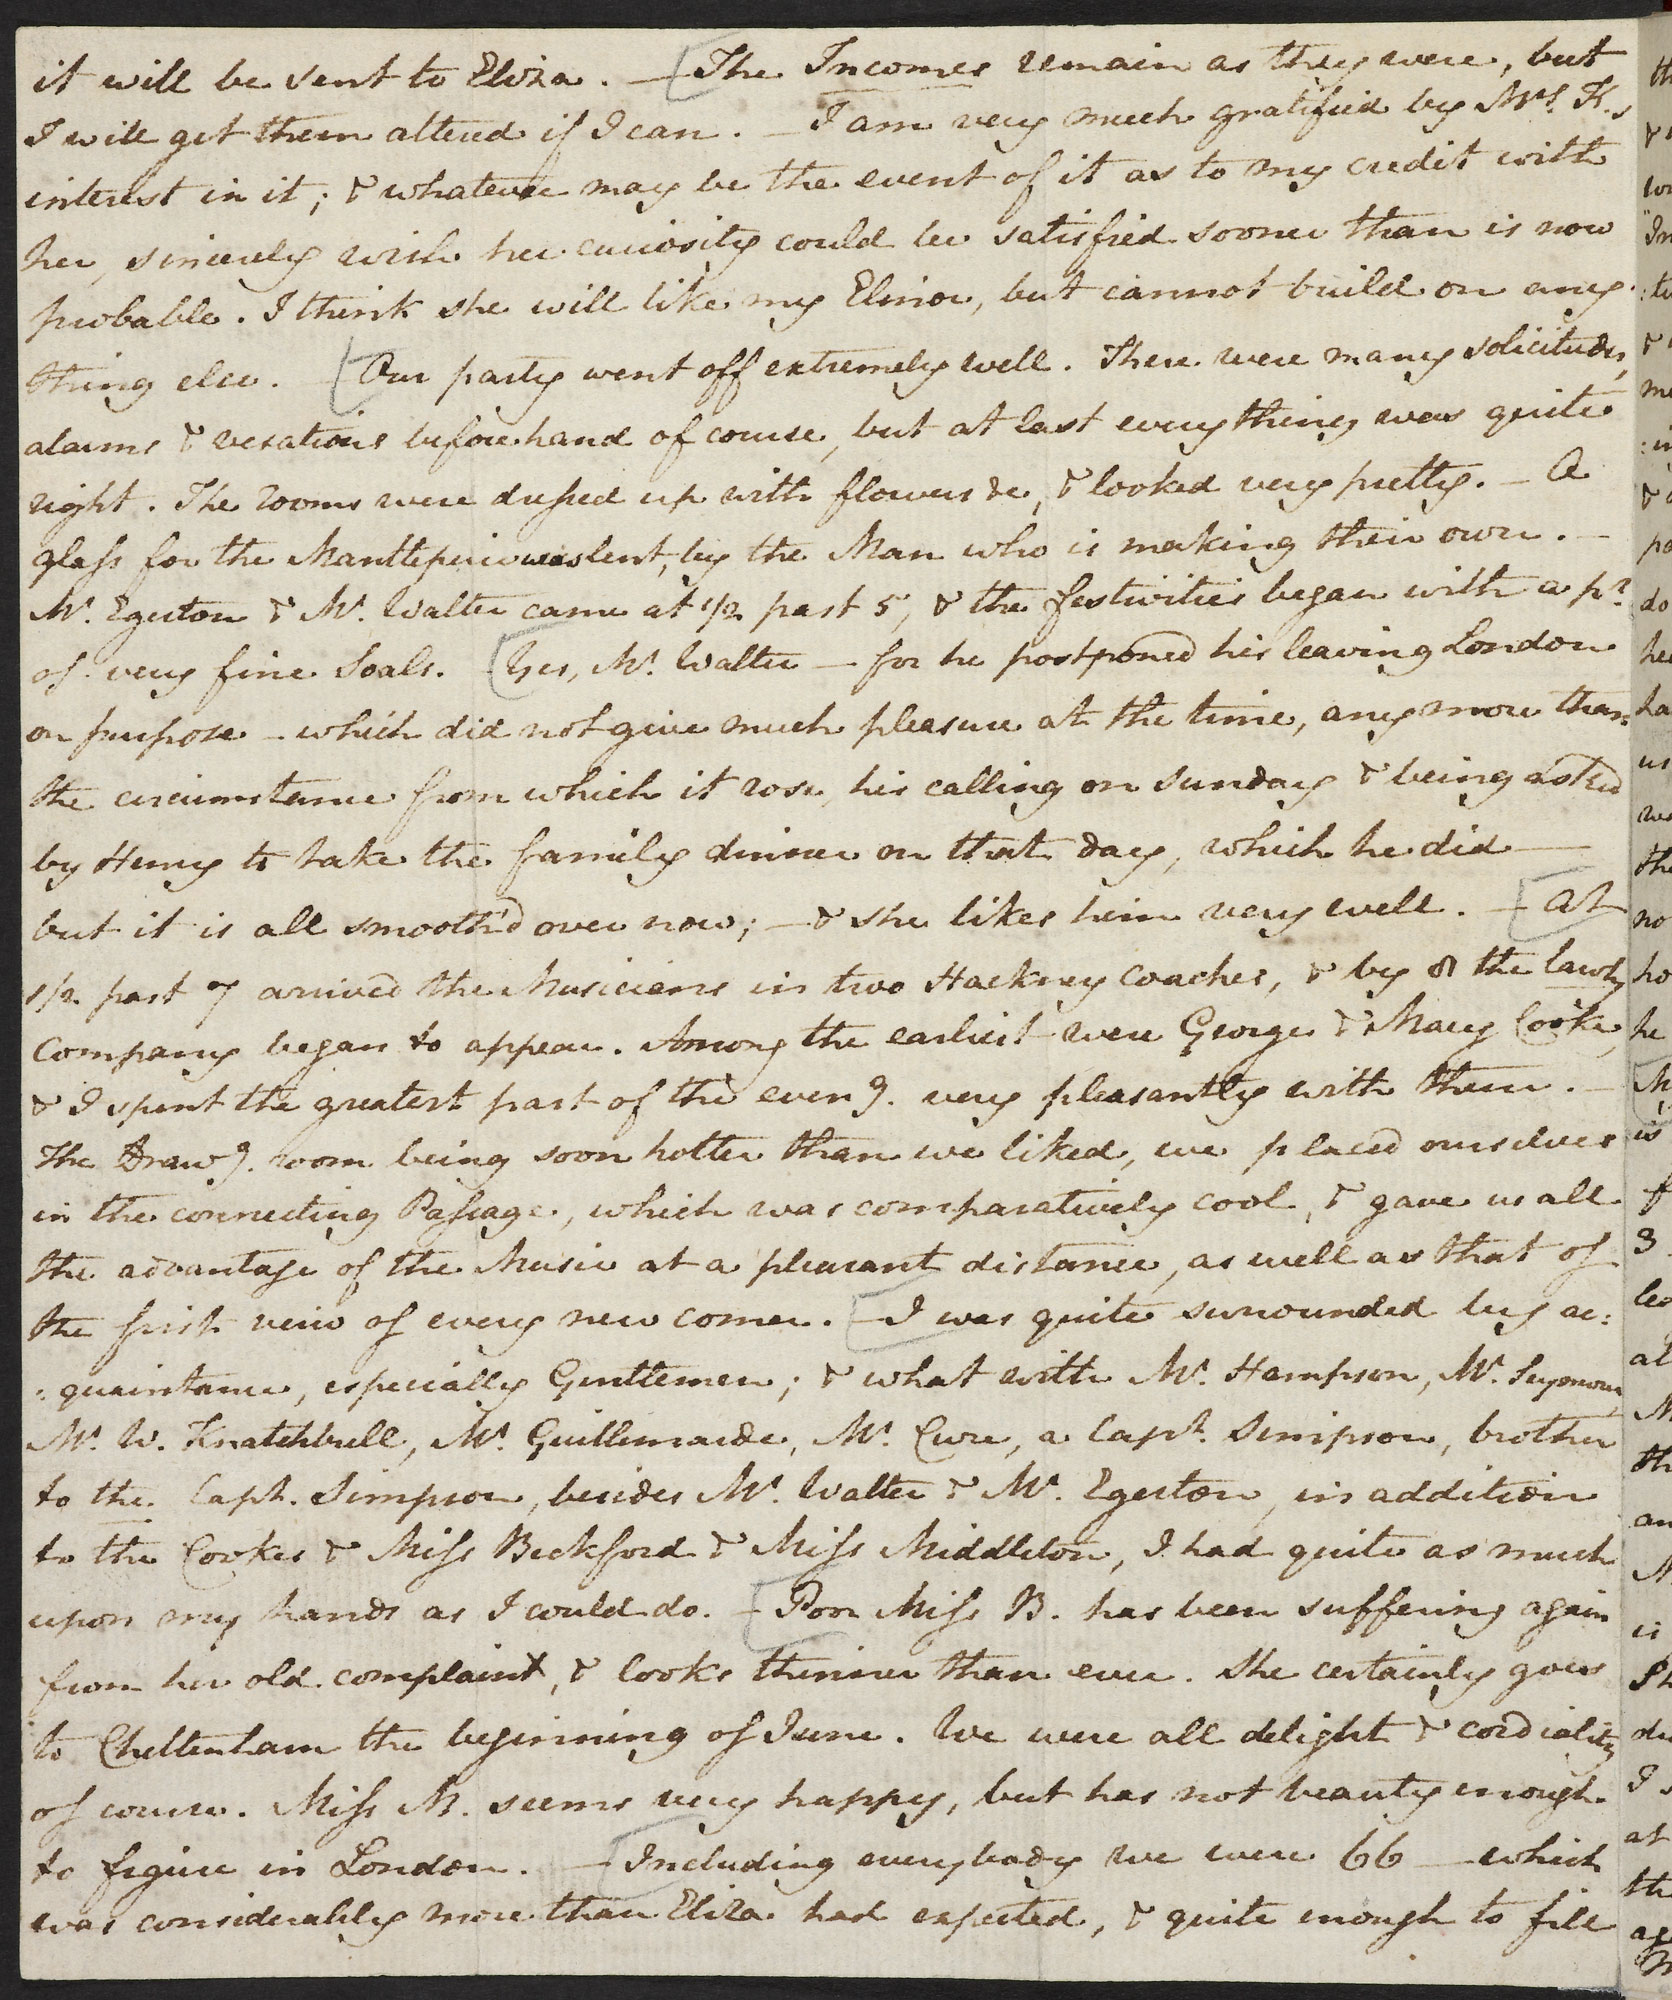 Letter from Jane Austen to her sister Cassandra, 25 April 1811 [folio: f. 7v]